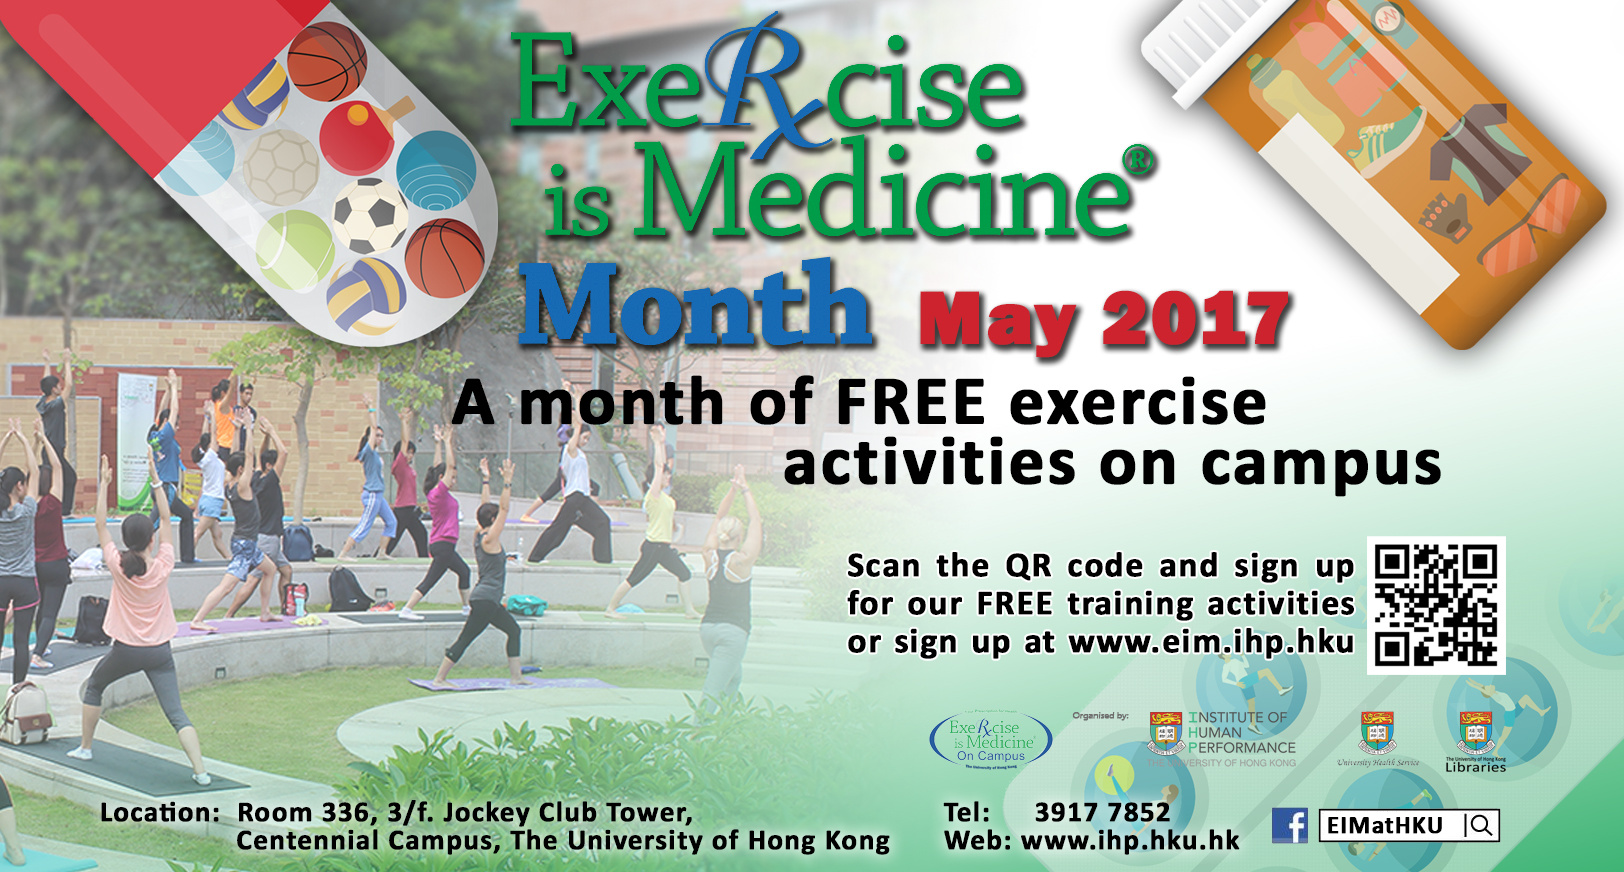 Exercise is Medicine on Campus Month - University of Hong Kong